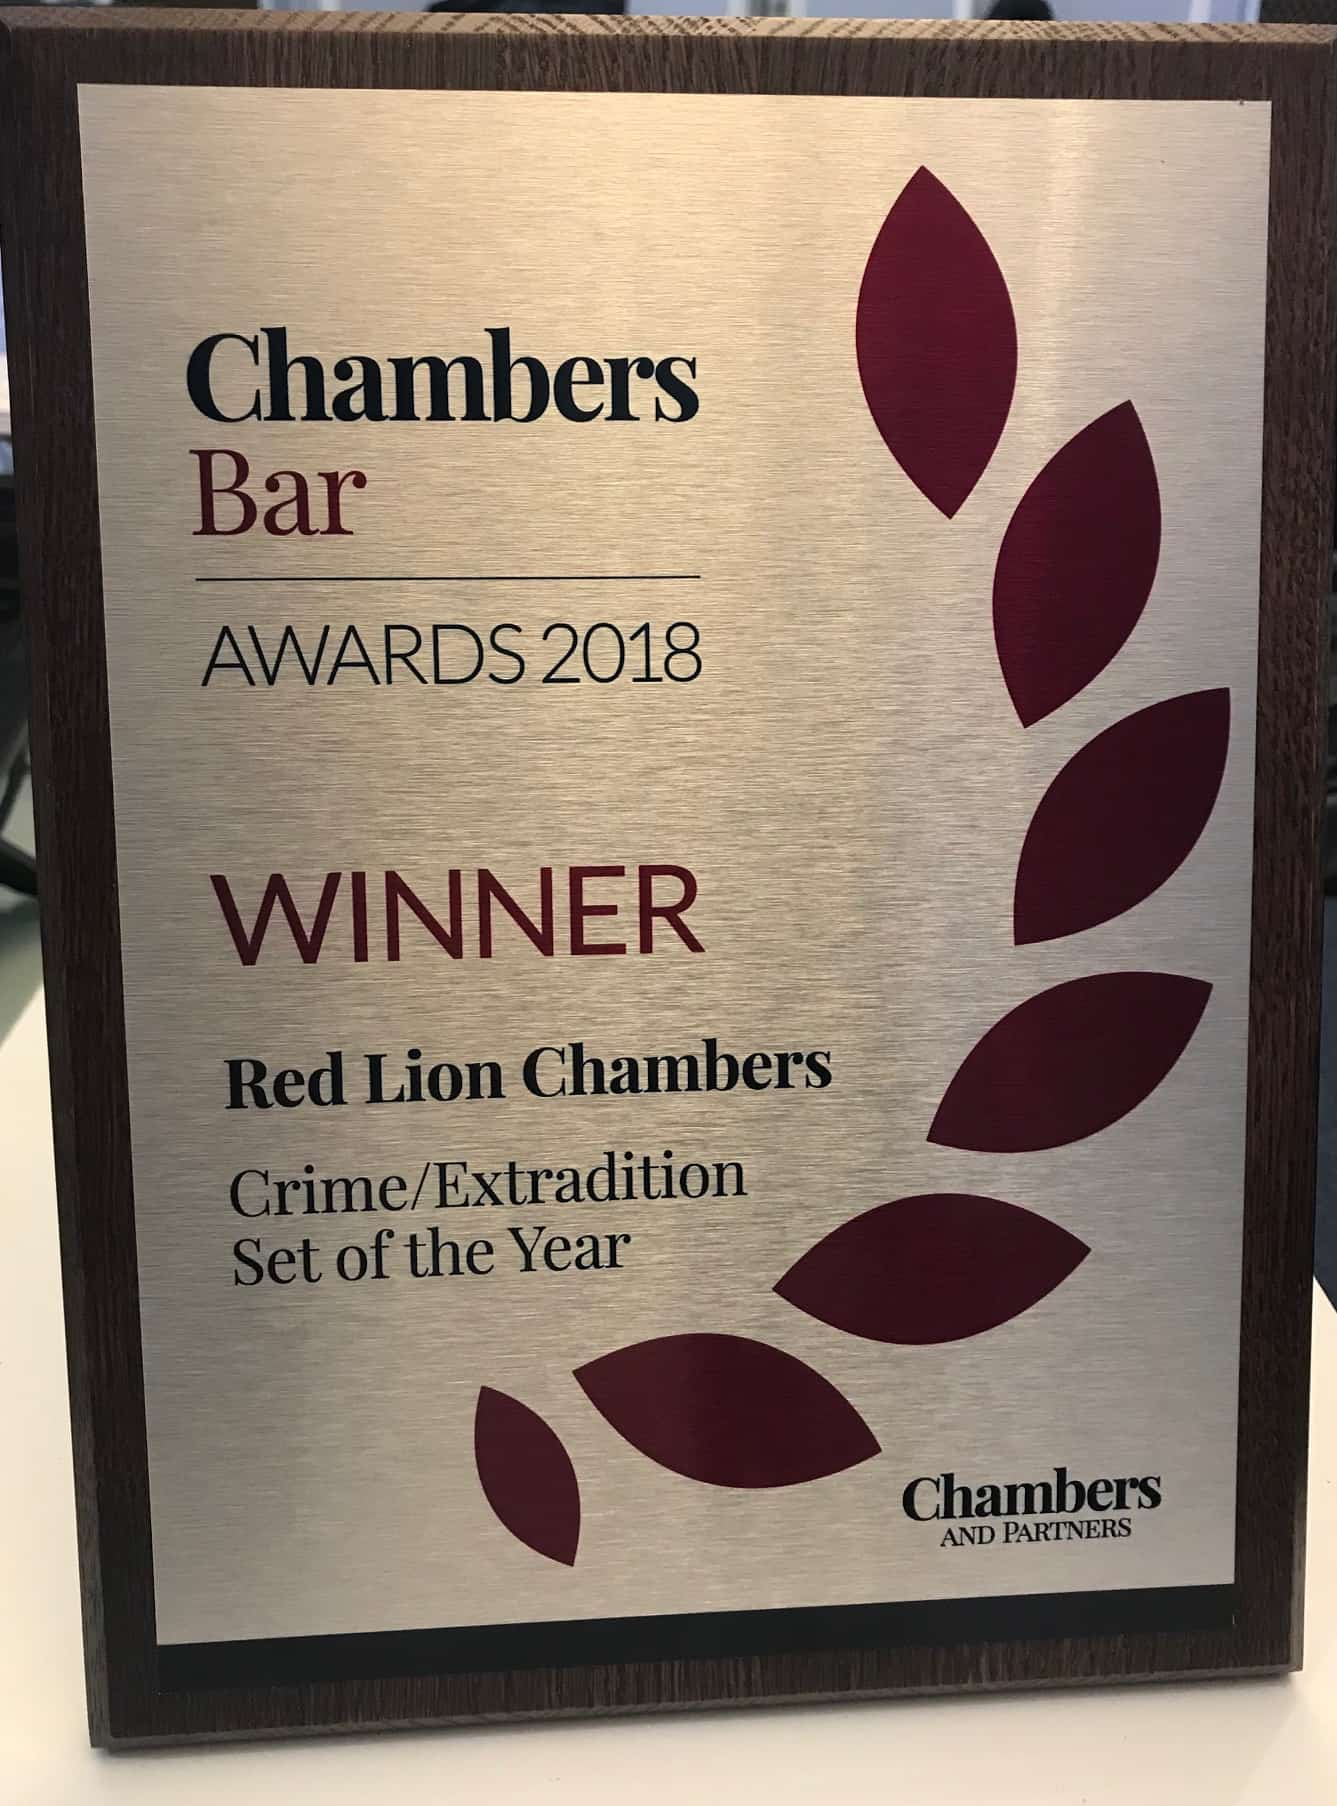 Red Lion Chambers has been awarded Criminal Set of the Year